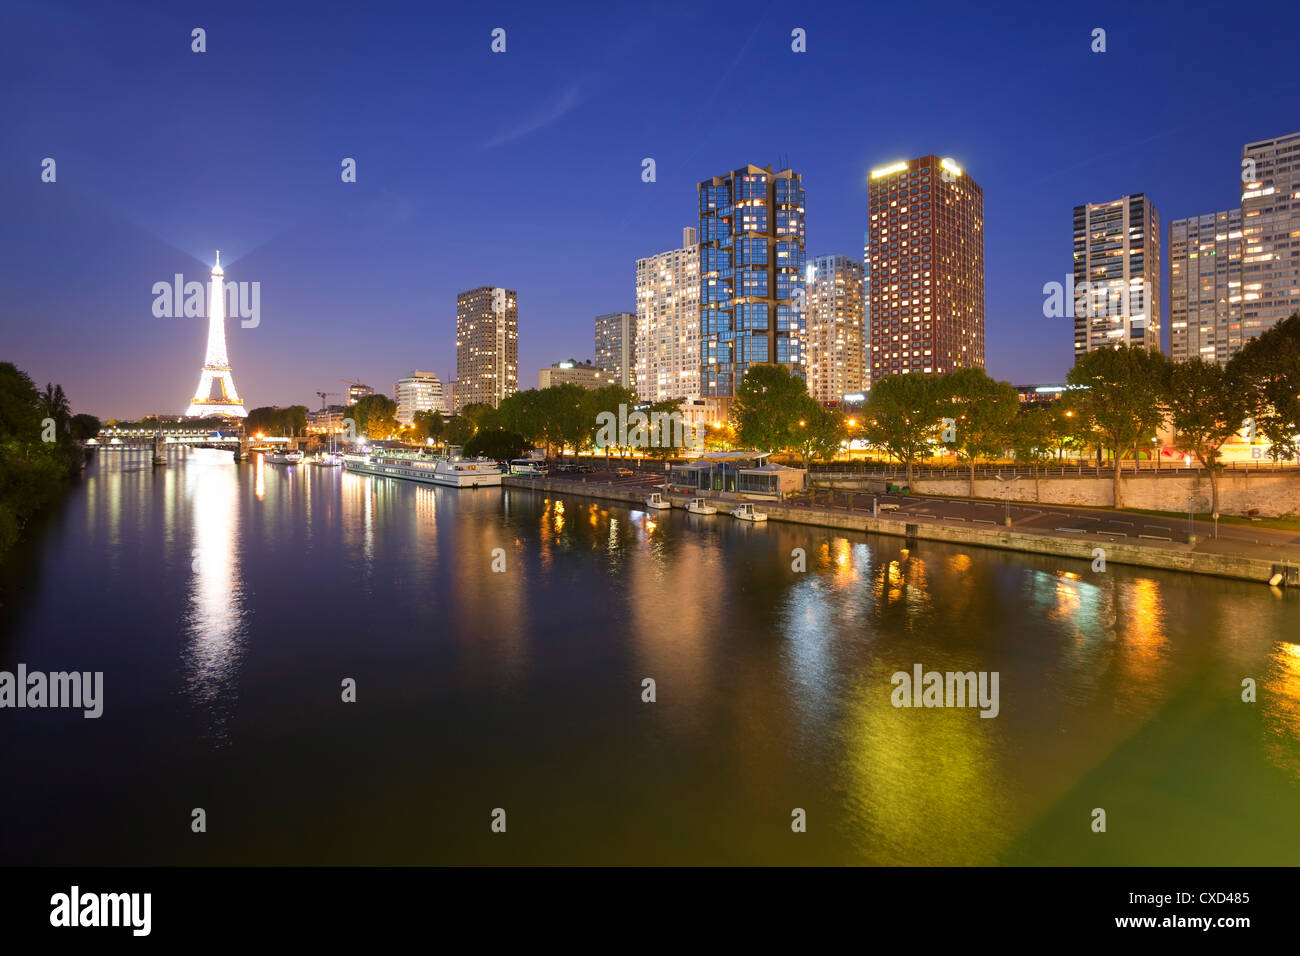 Night view of River Seine with high-rise buildings on the Left Bank, and Eiffel Tower, Paris, France, Europe - Stock Image